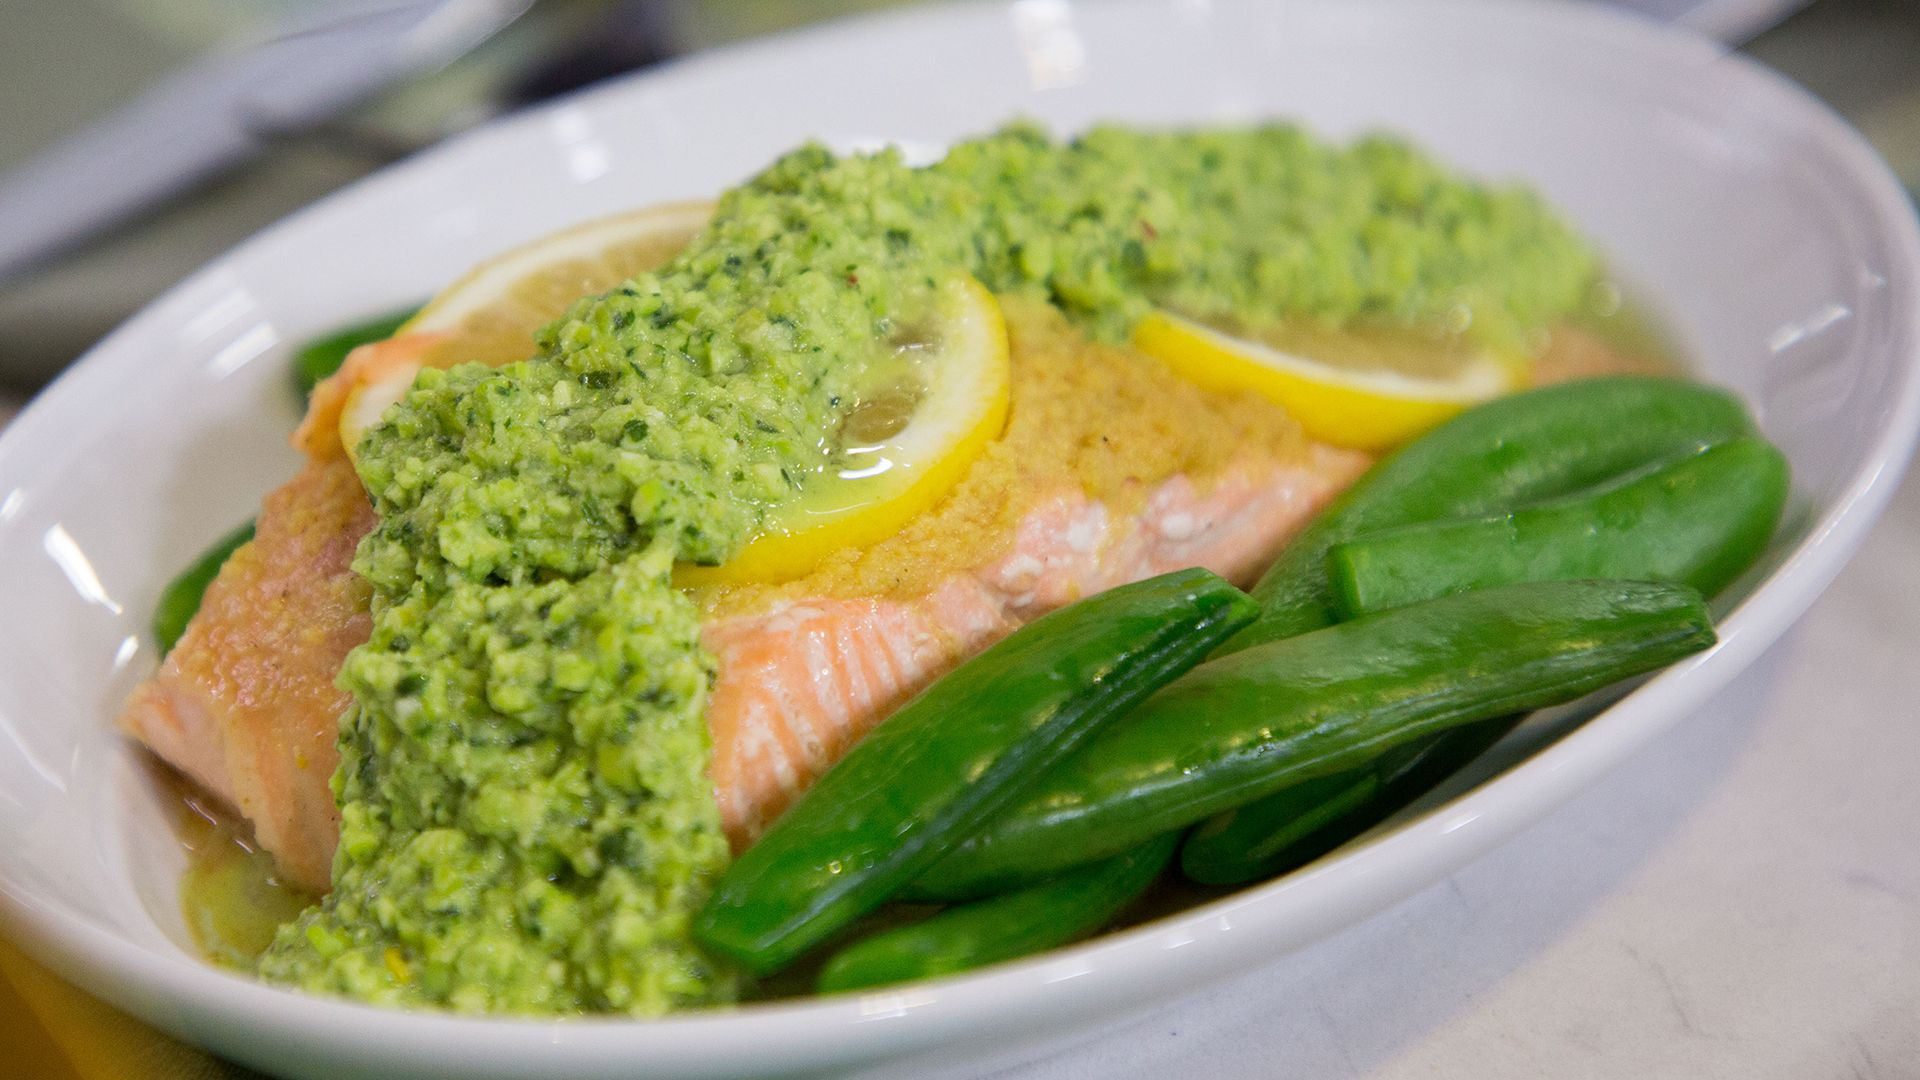 Grilled FoilPacket Salmon with Snap Peas and Edamame